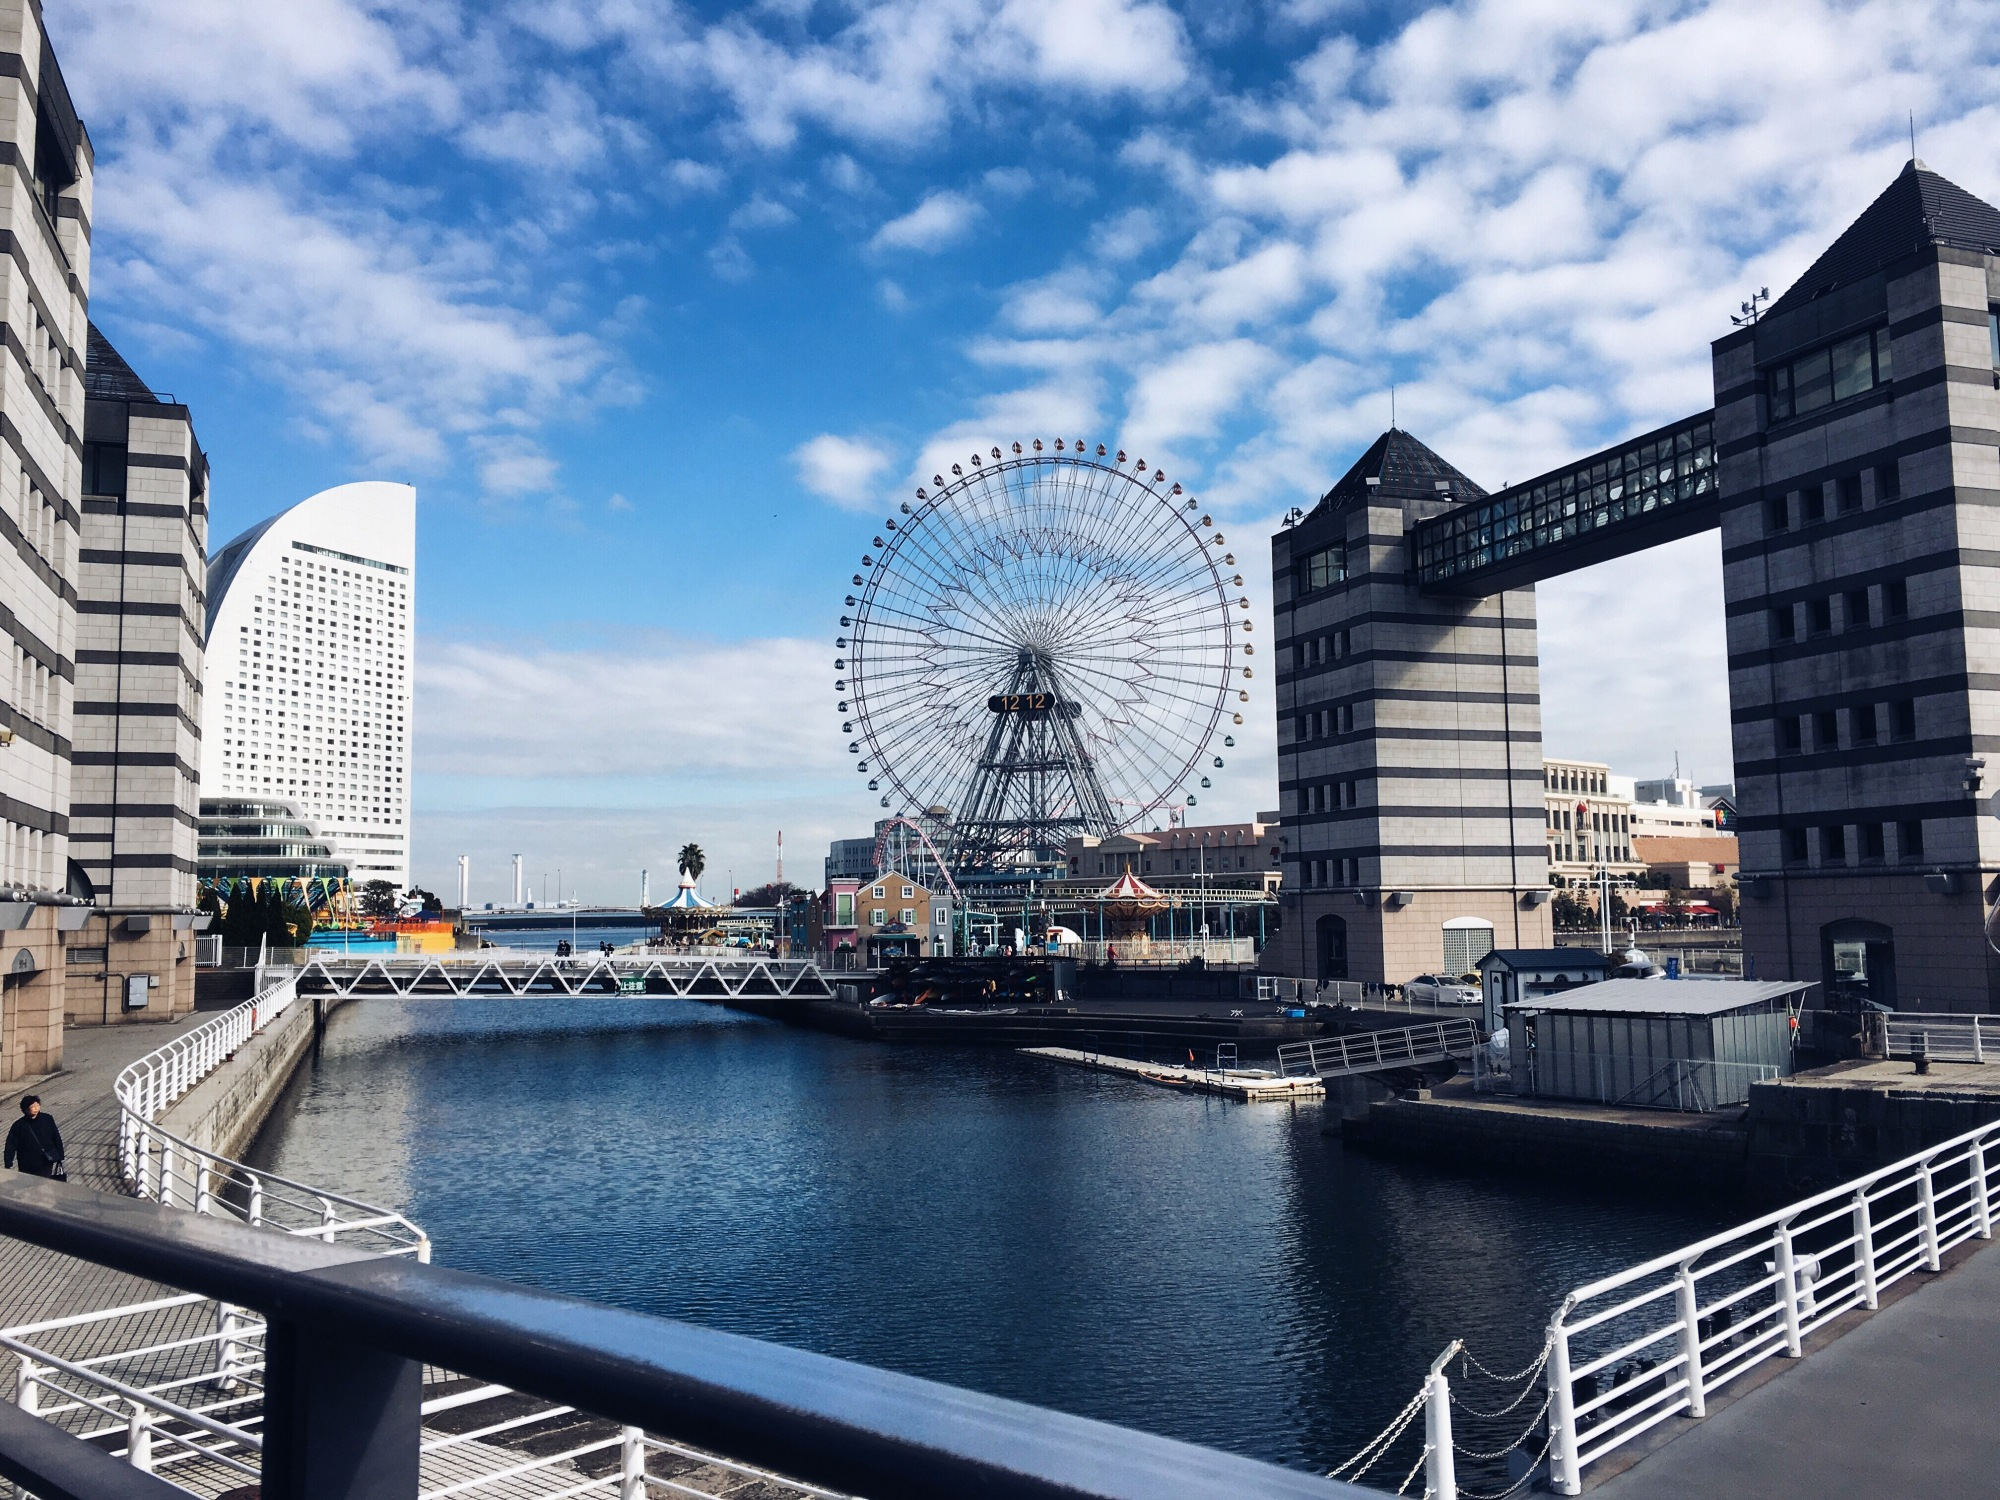 the-nat-channel-japan-yokohama-minato-mirai-ferris-wheel-tower-bridge-blue